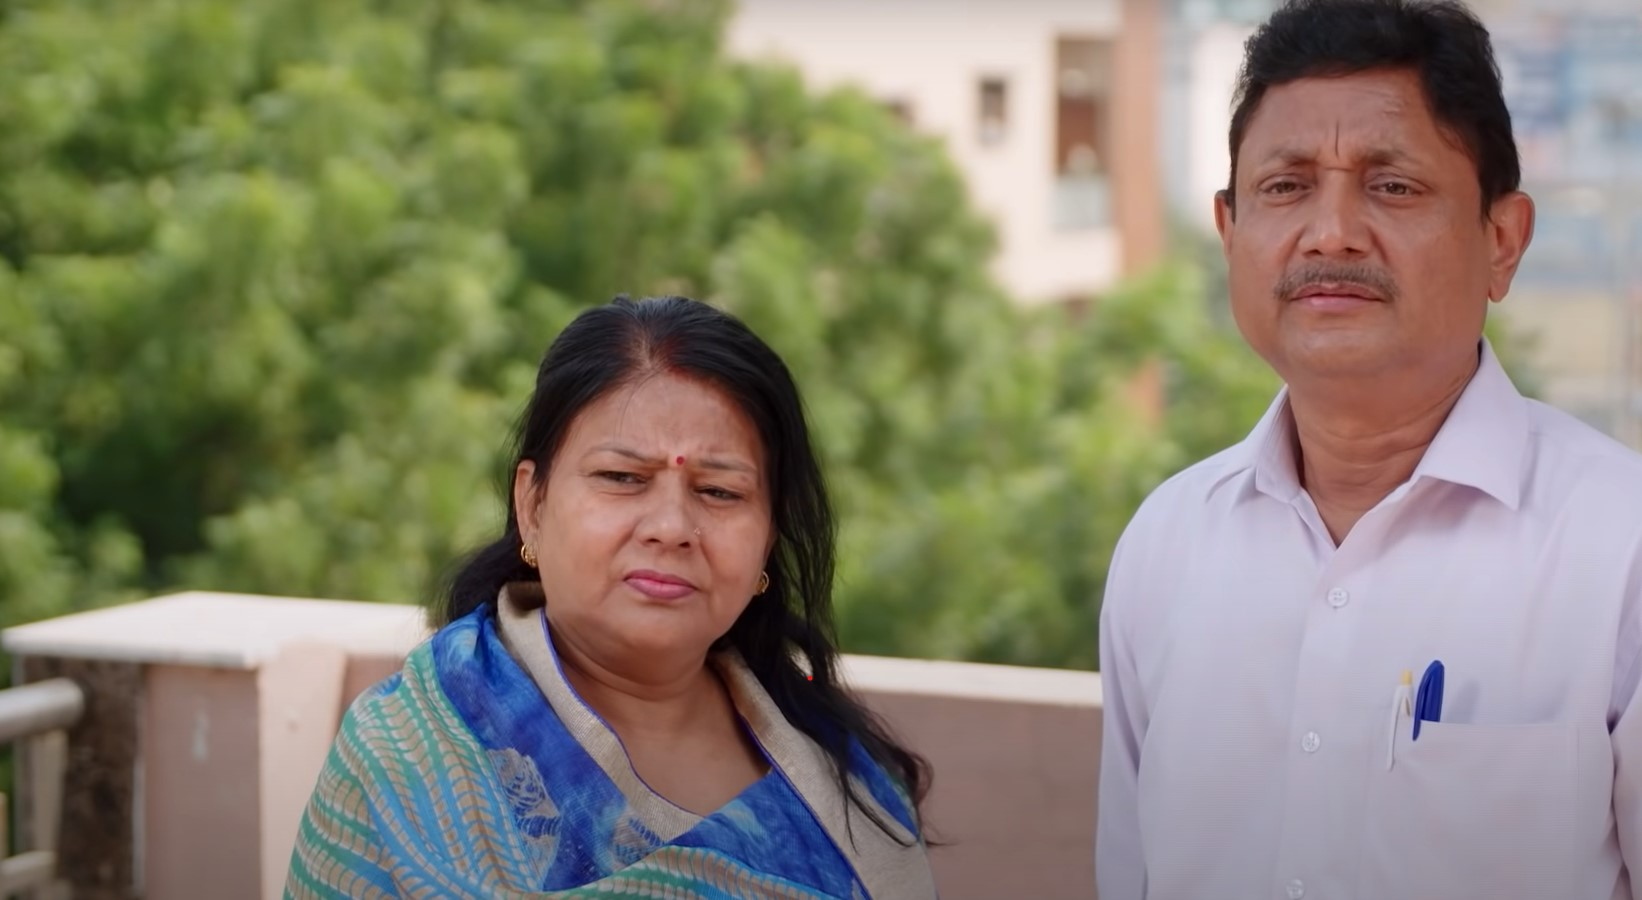 Sumit's parents on '90 Day Fiancé: The Other Way'